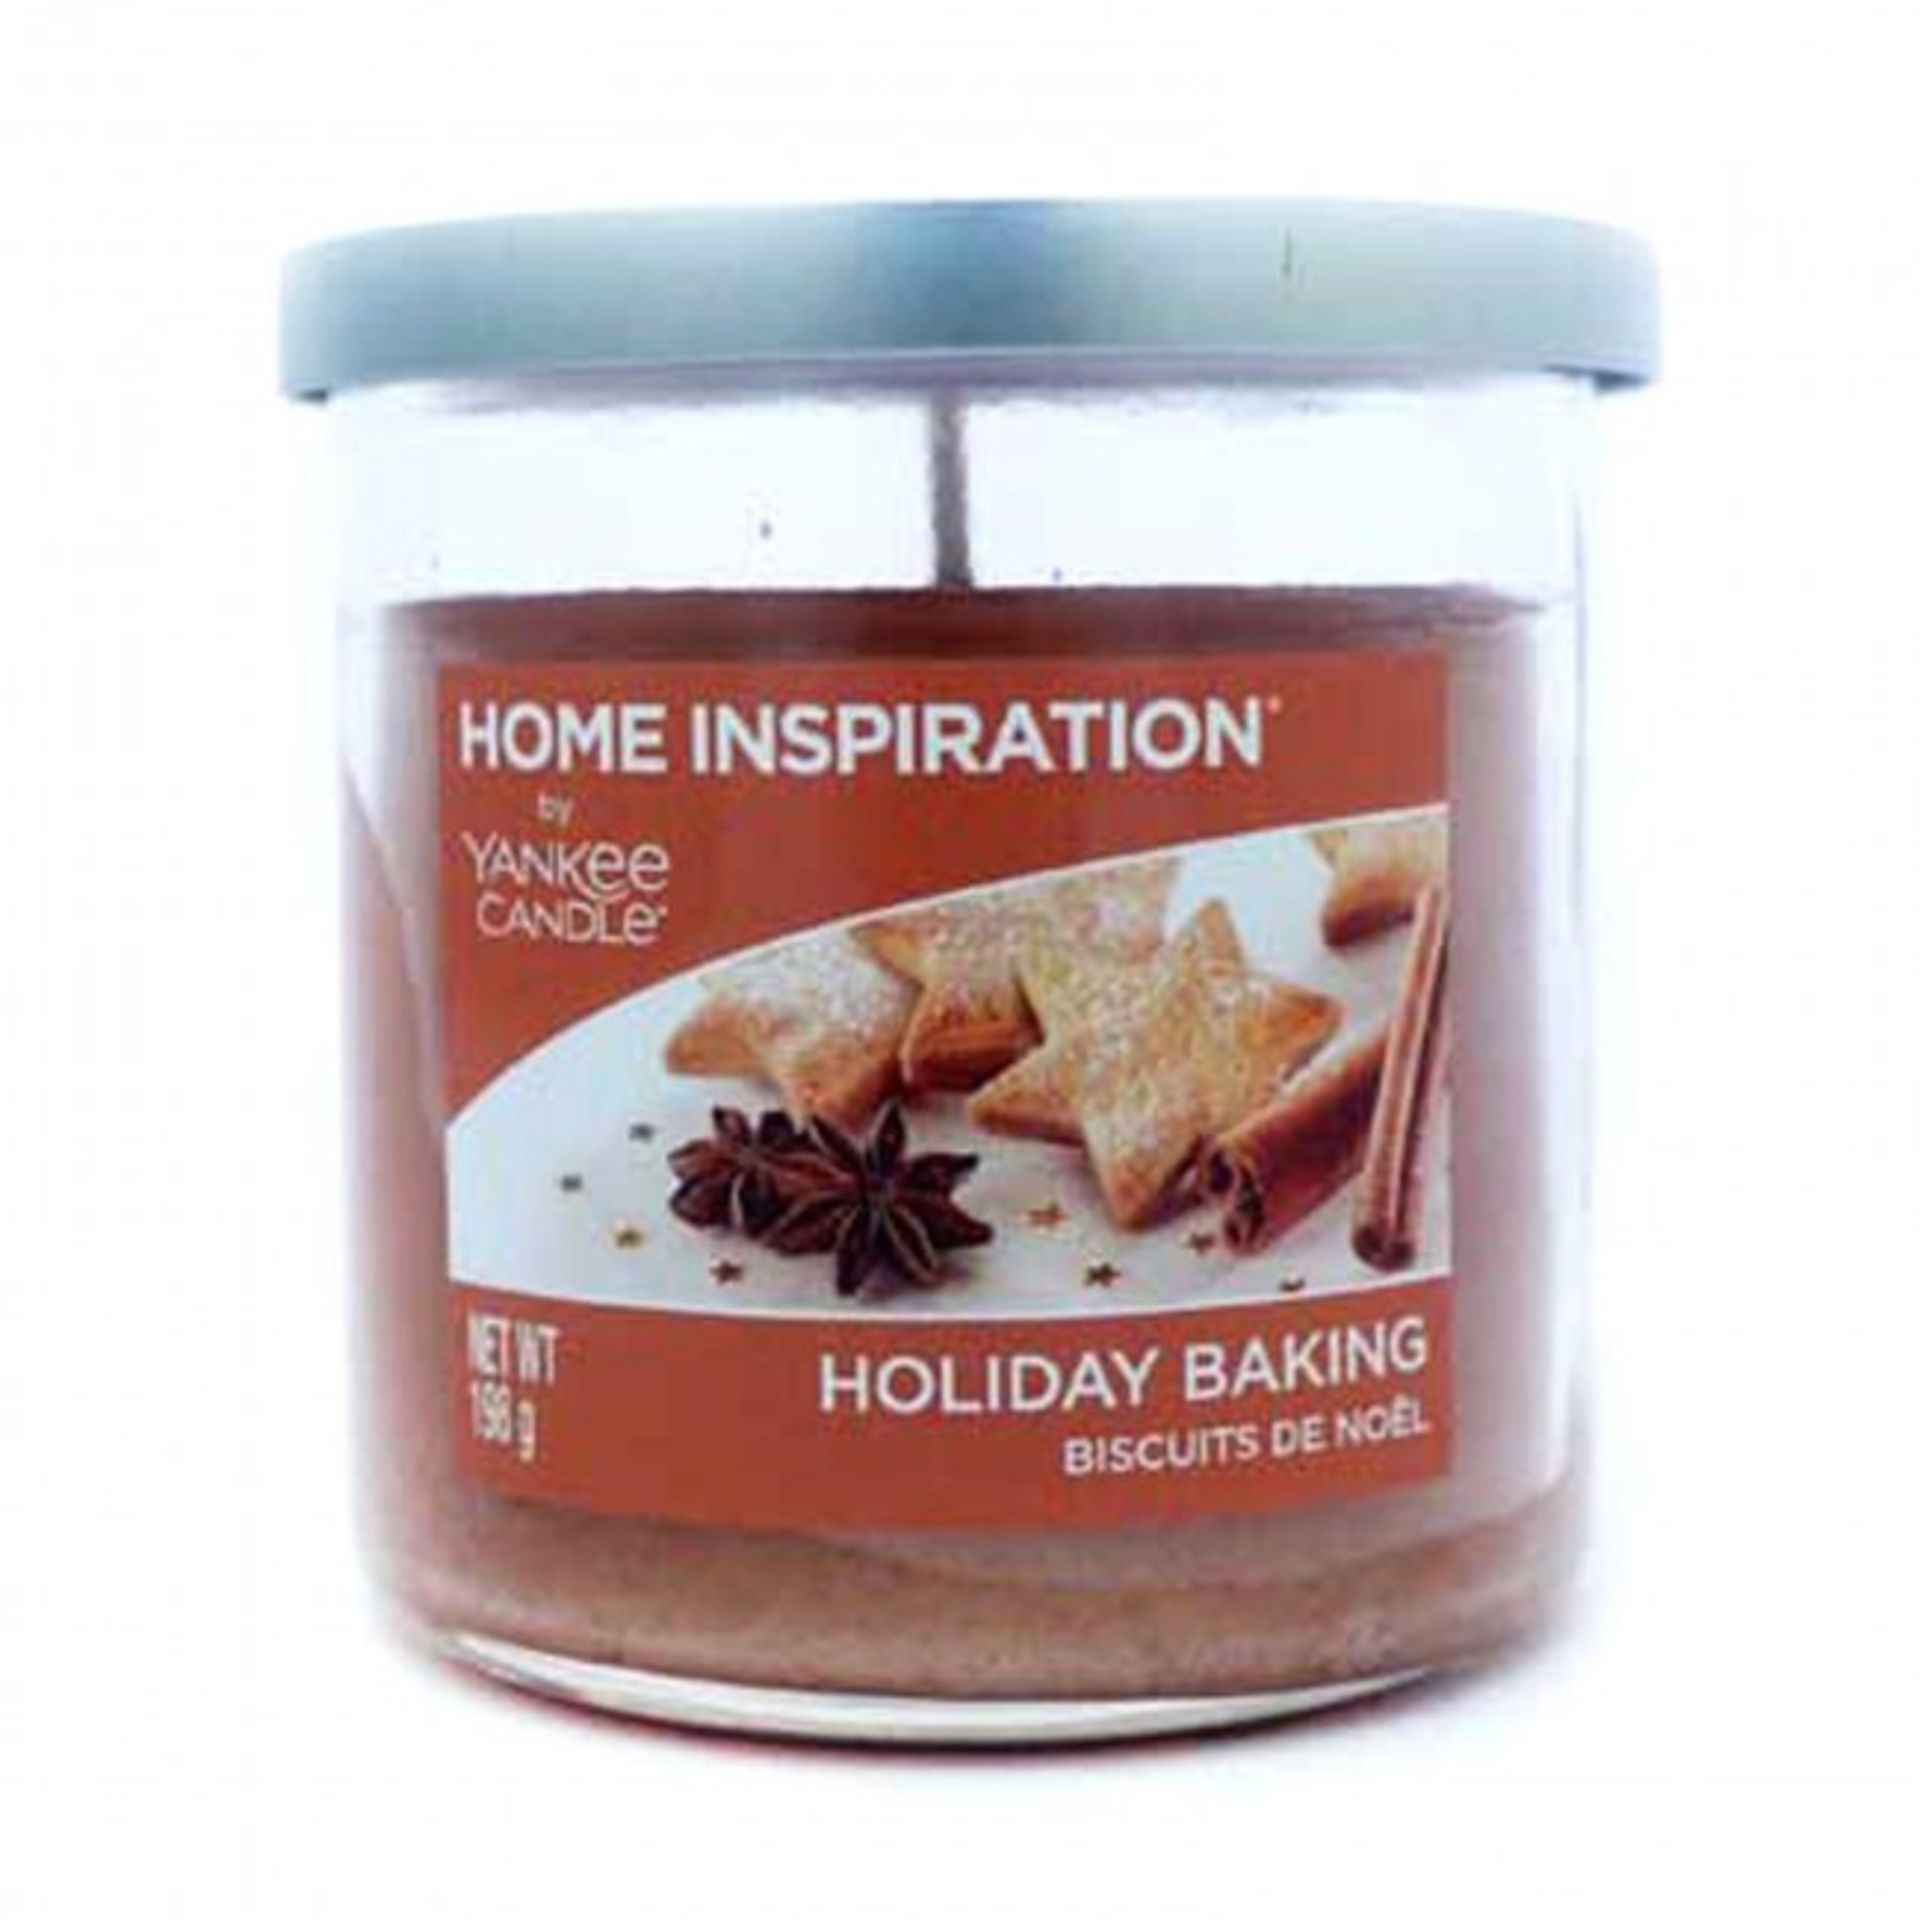 Lot 50138 - V Brand New Home Inspiration by Yankee Candle Holiday Baking 198g Tumbler Candle - ISP £7.99 Ebay